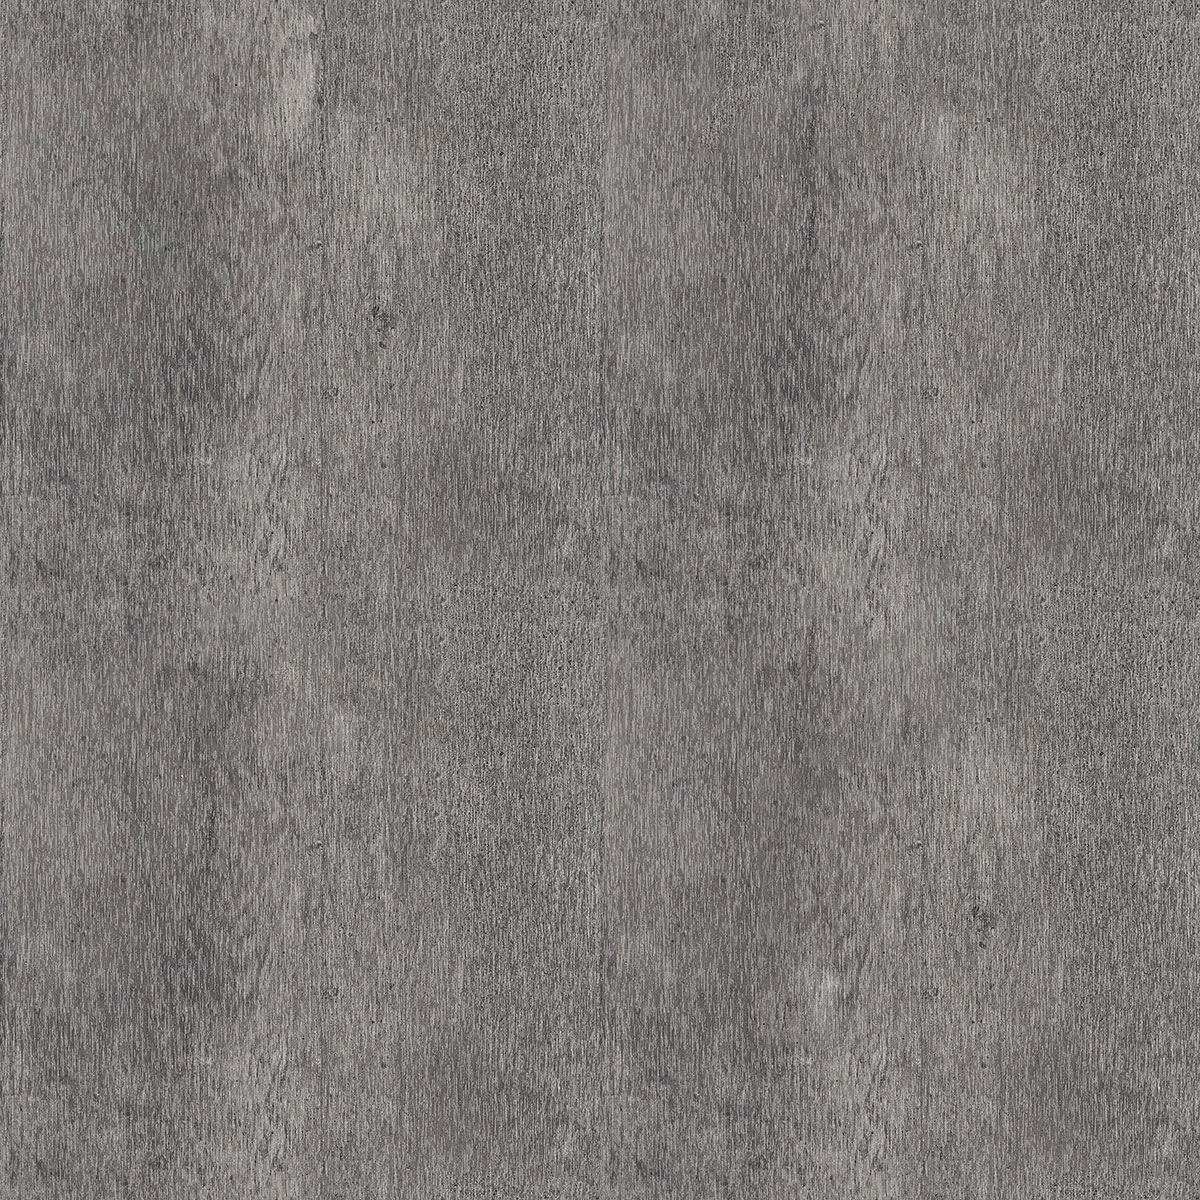 6416 Charred Formwood - Formica